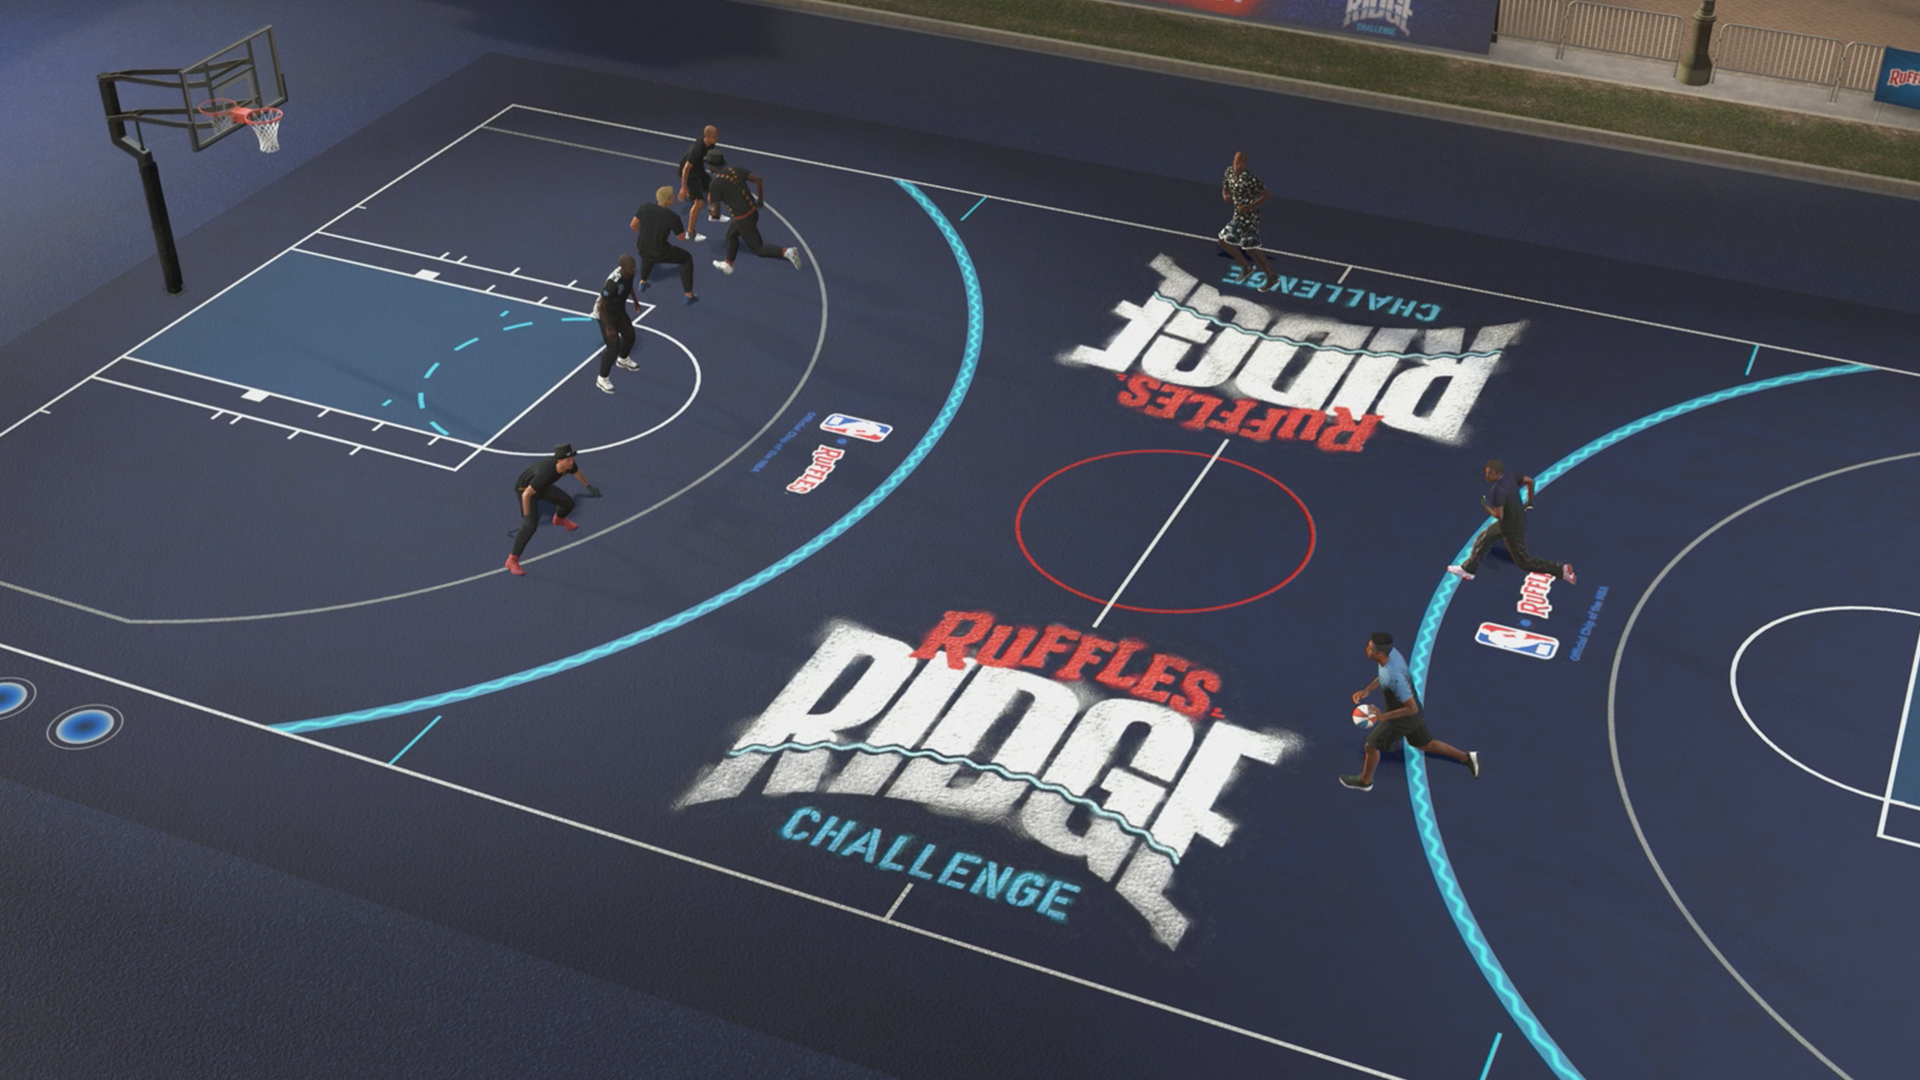 Ruffles and 2k Team Up for 4 Point Line in NBA 2K19 | GamesReviews.com